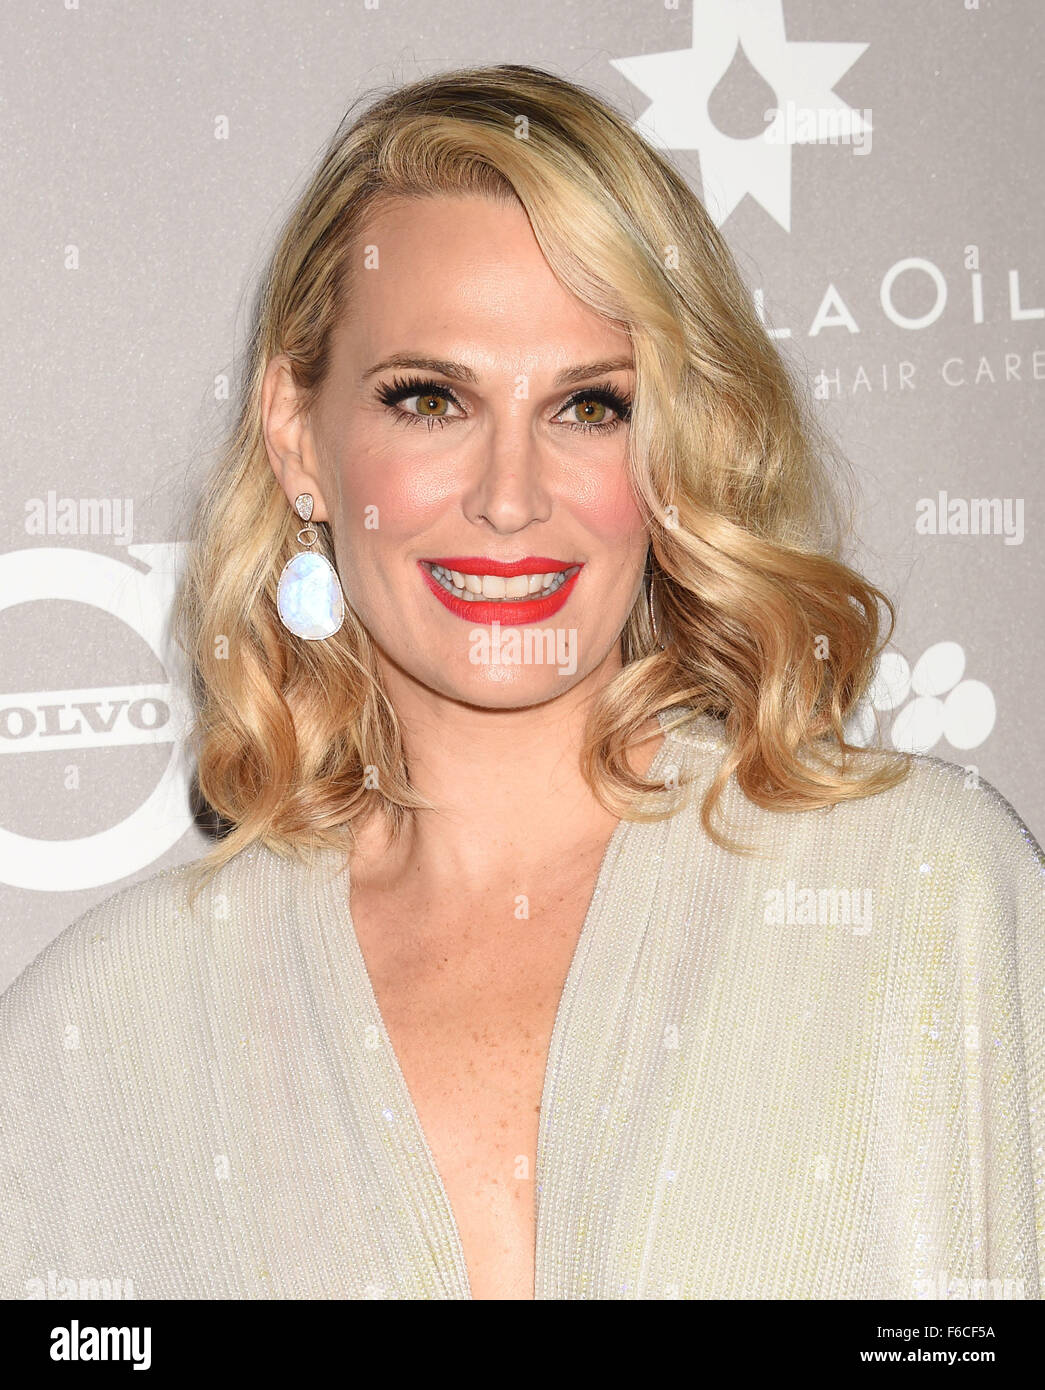 Molly Sims USA 	1 	2001 nudes (69 photos), Tits, Cleavage, Twitter, underwear 2017